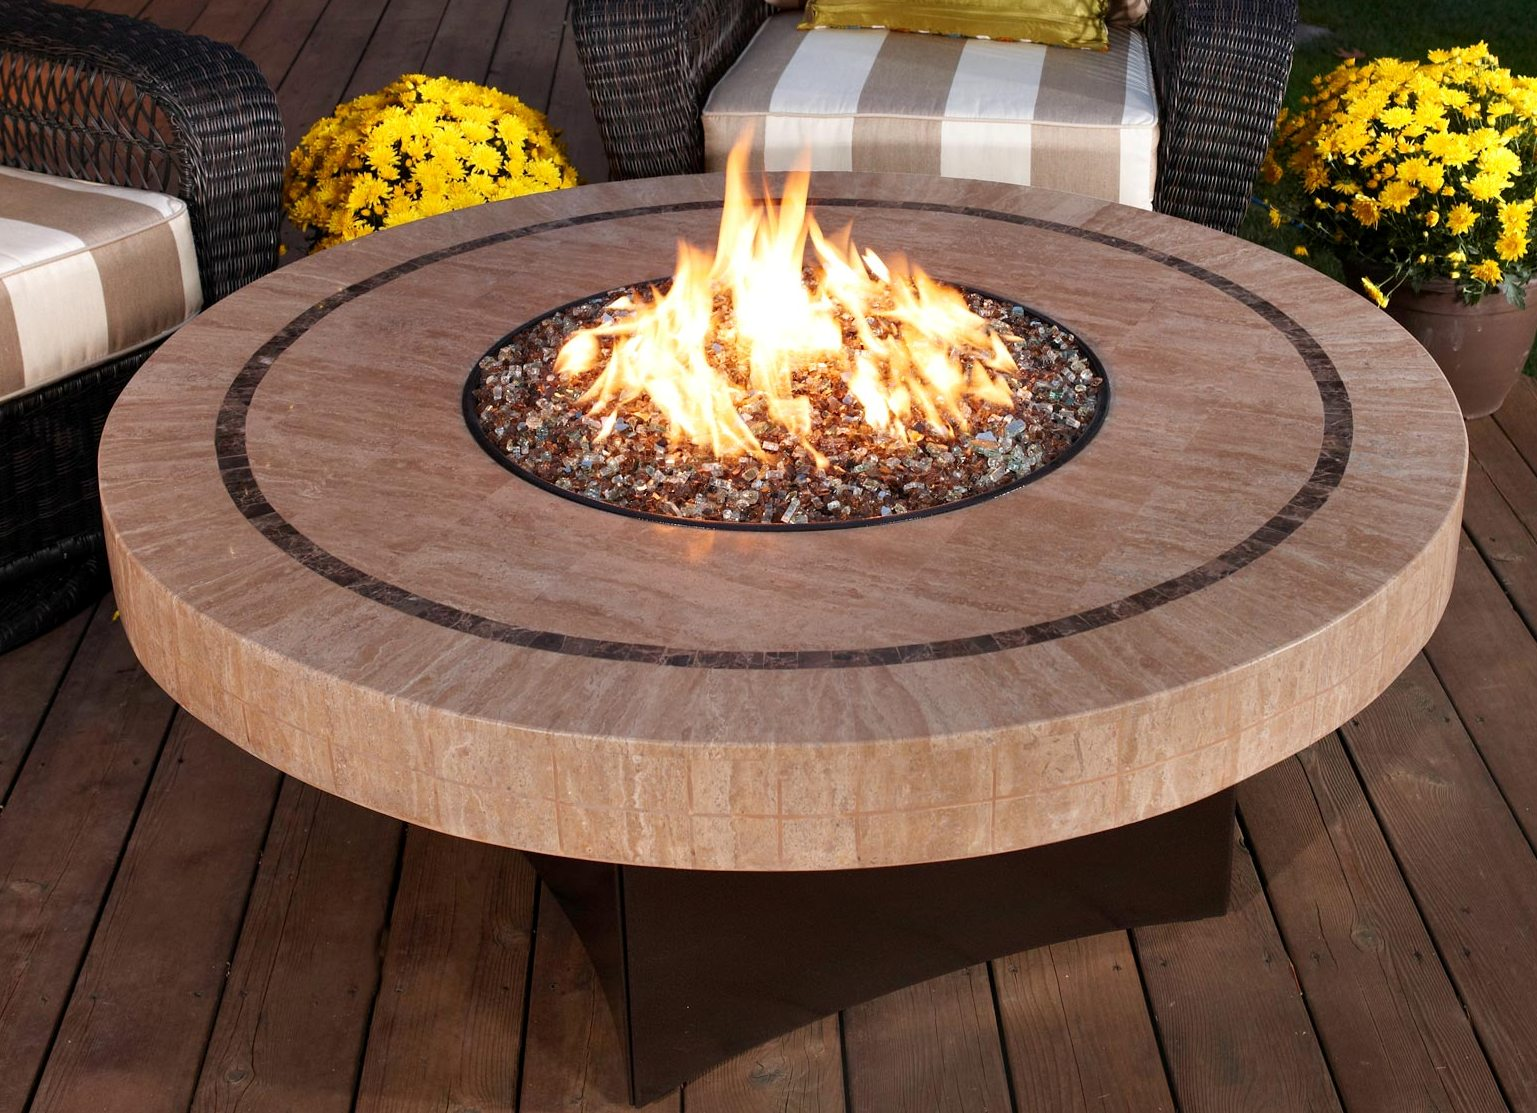 This stone Oriflamme fire table features a unique sandstone mosaic tabletop design. Order this beautiful Sahara fire pit table online from AllBackyardFun!